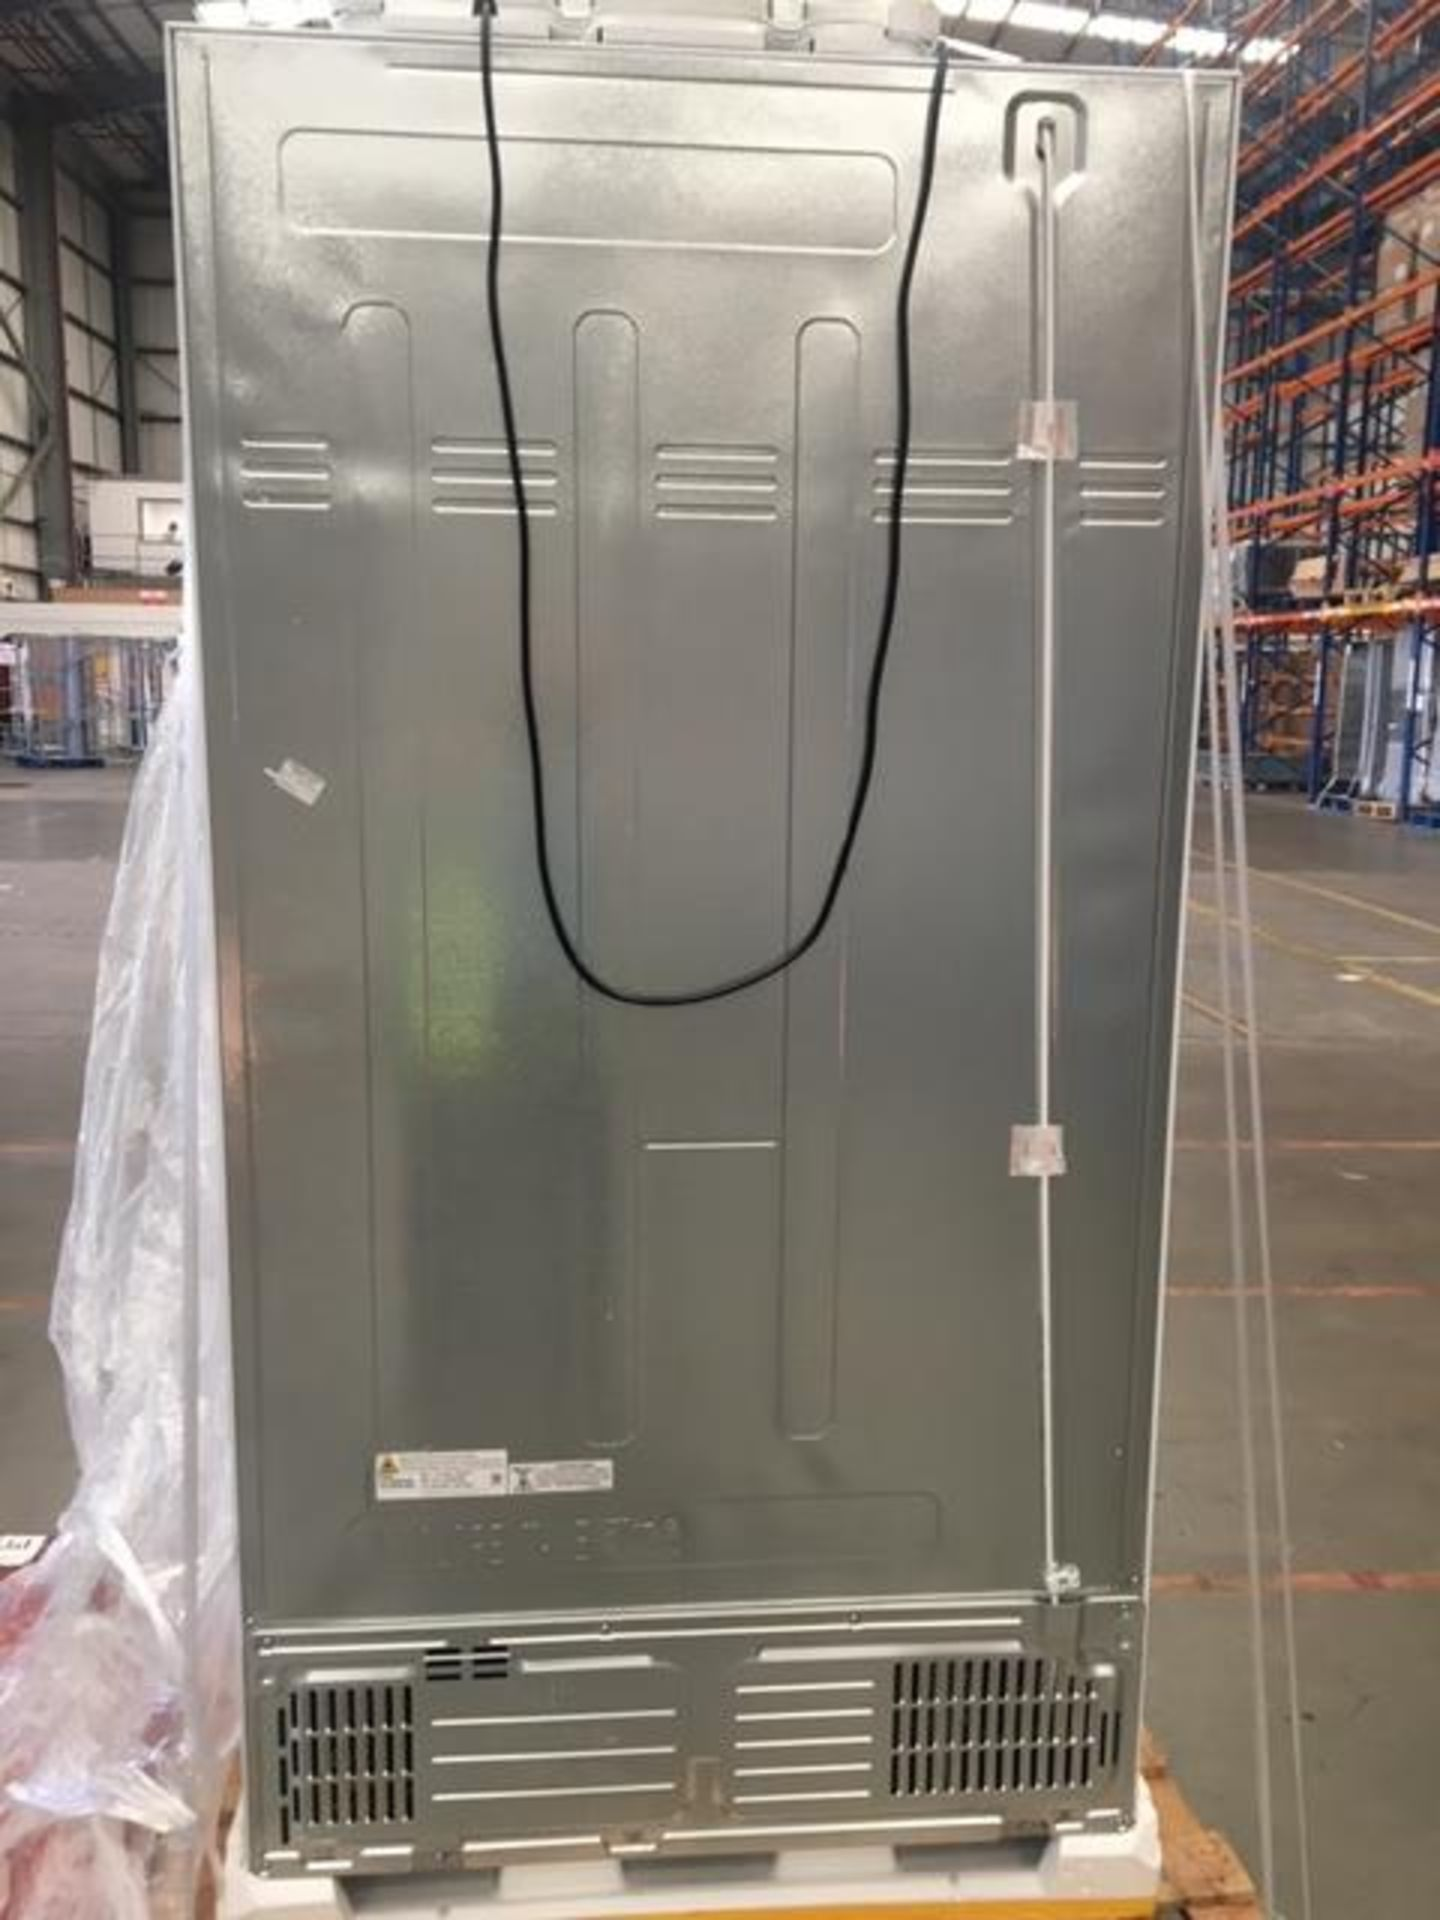 Pallet of 1 Samsung Water & Ice Fridge freezer. Latest selling price £999.99* - Image 8 of 8